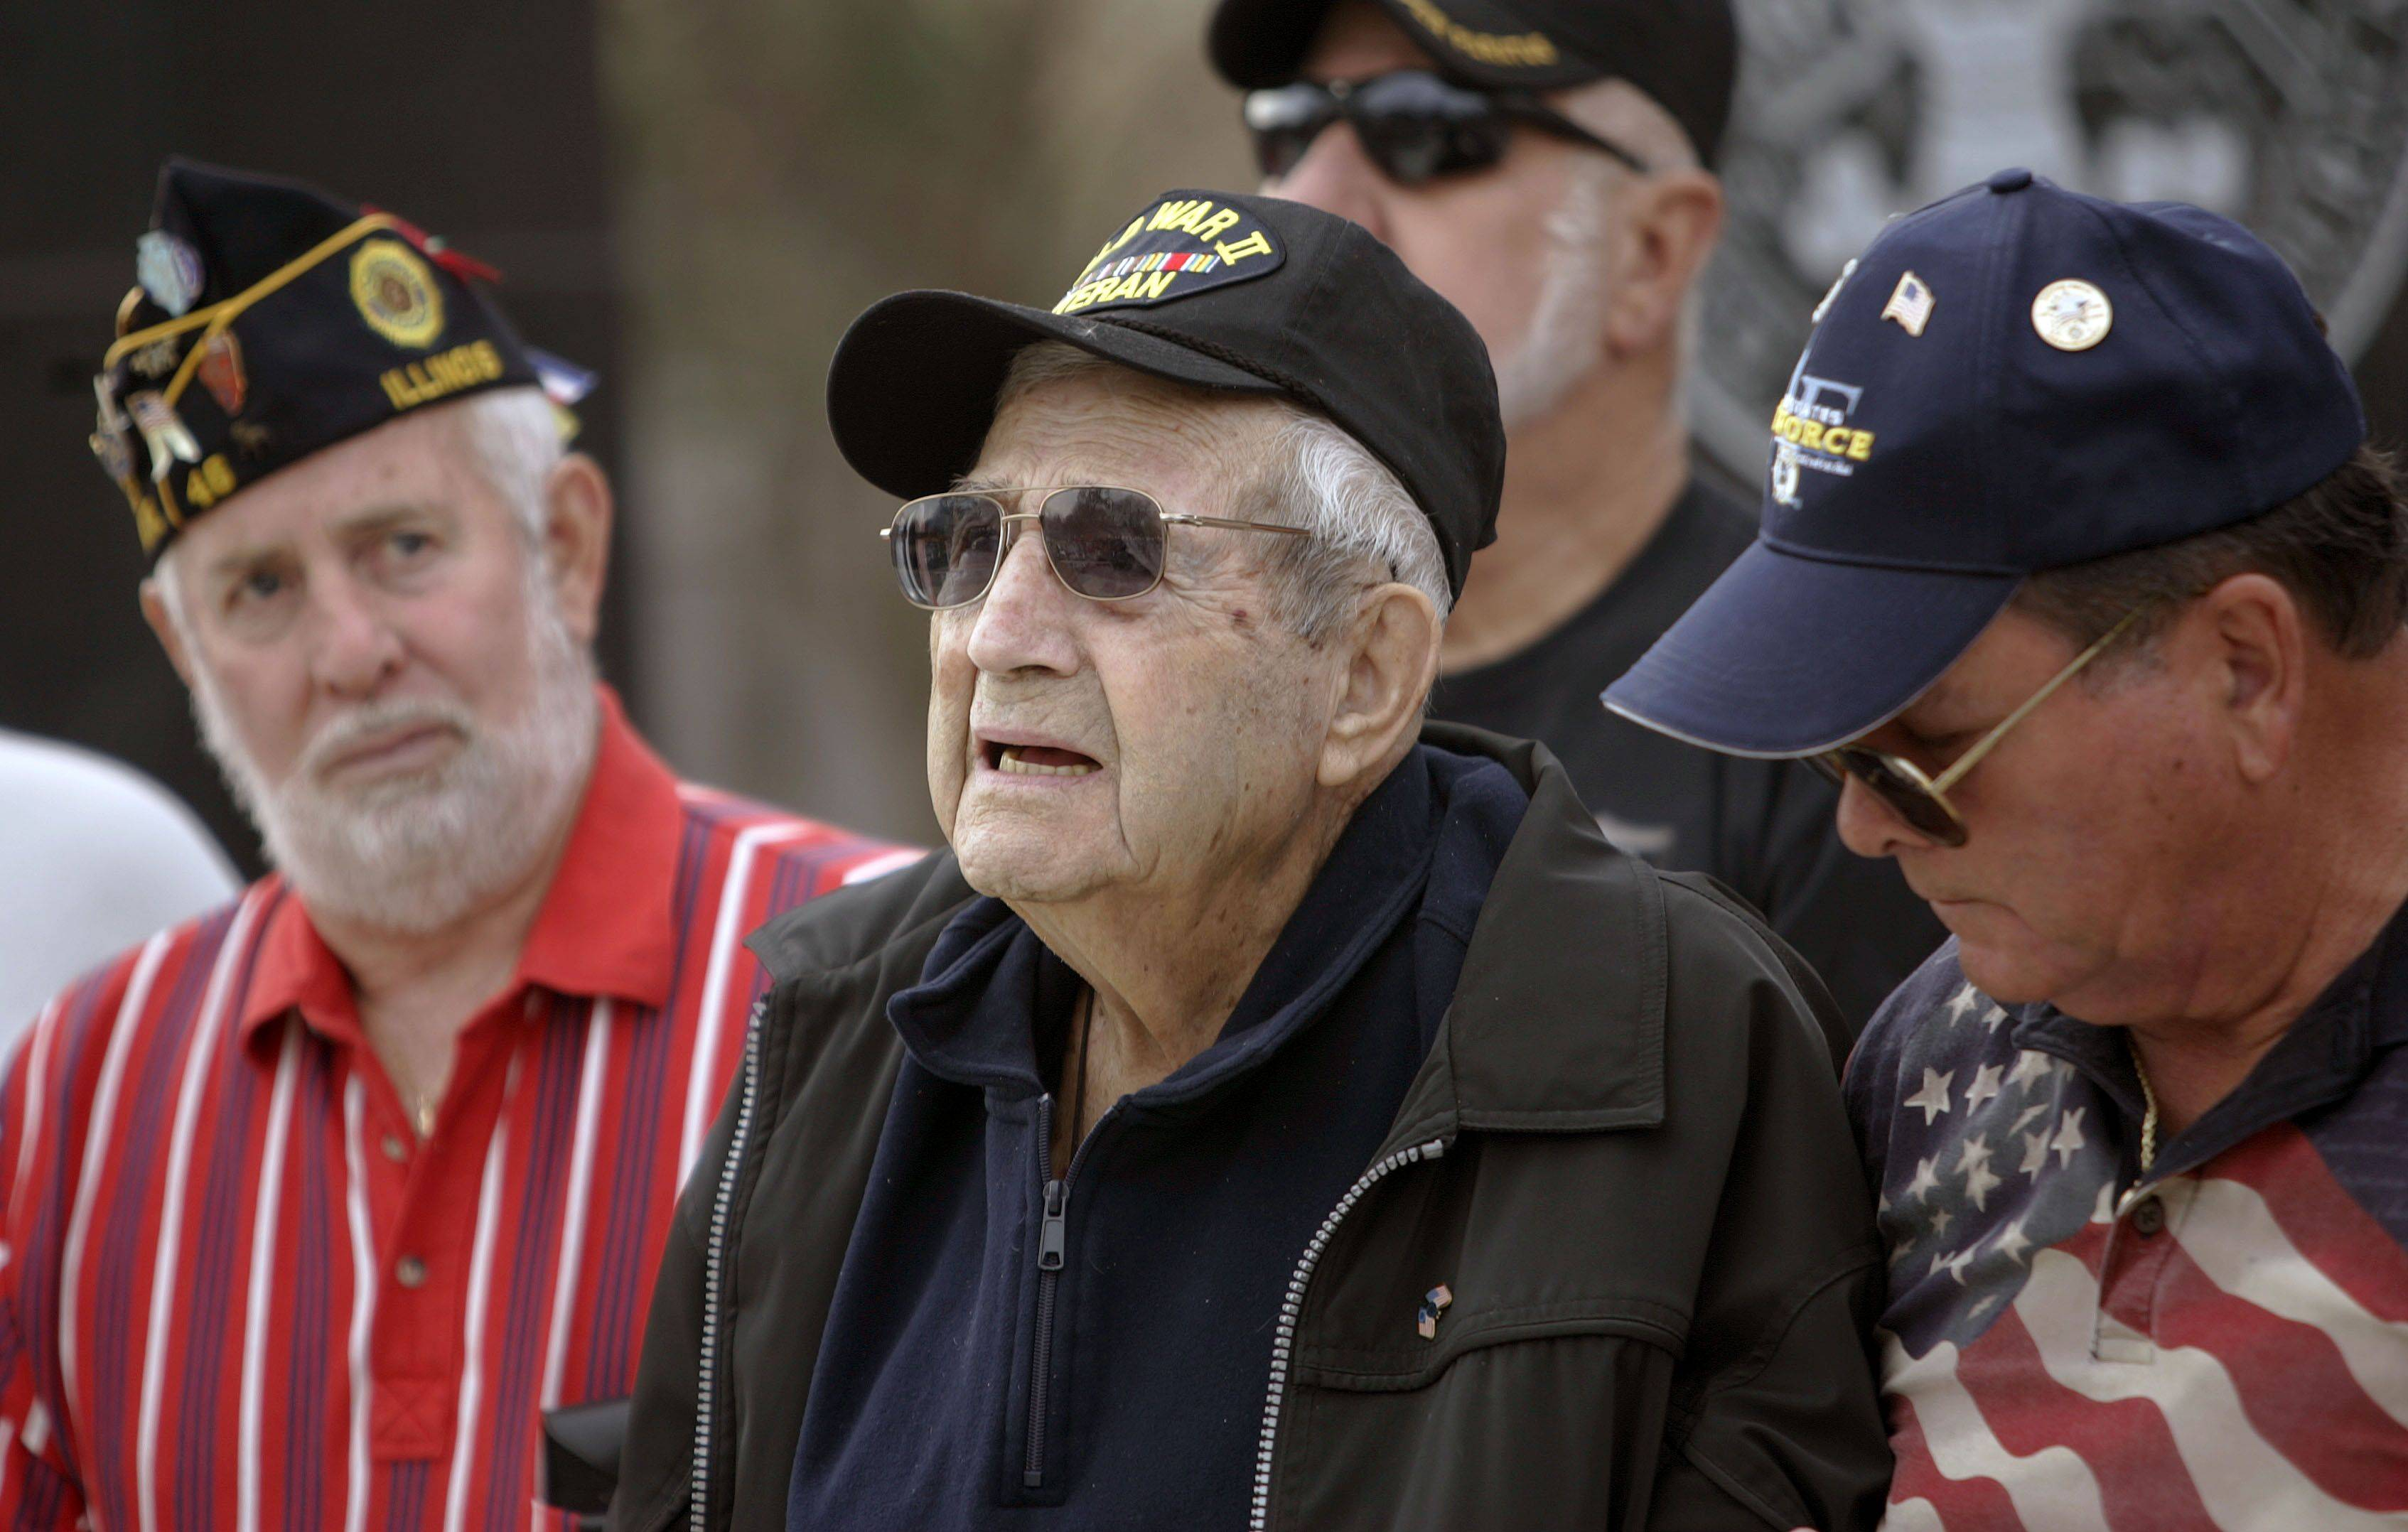 World War II Veteran Ed Bybee of Lindenhurst, center, flanked by Richard May of Lindenhurst, left and Lawrence Piemontese of Mundelein, all stand as local veterans were honored during a Veterans Day ceremony at the Lindenhurst Veterans Memorial Thursday morning.